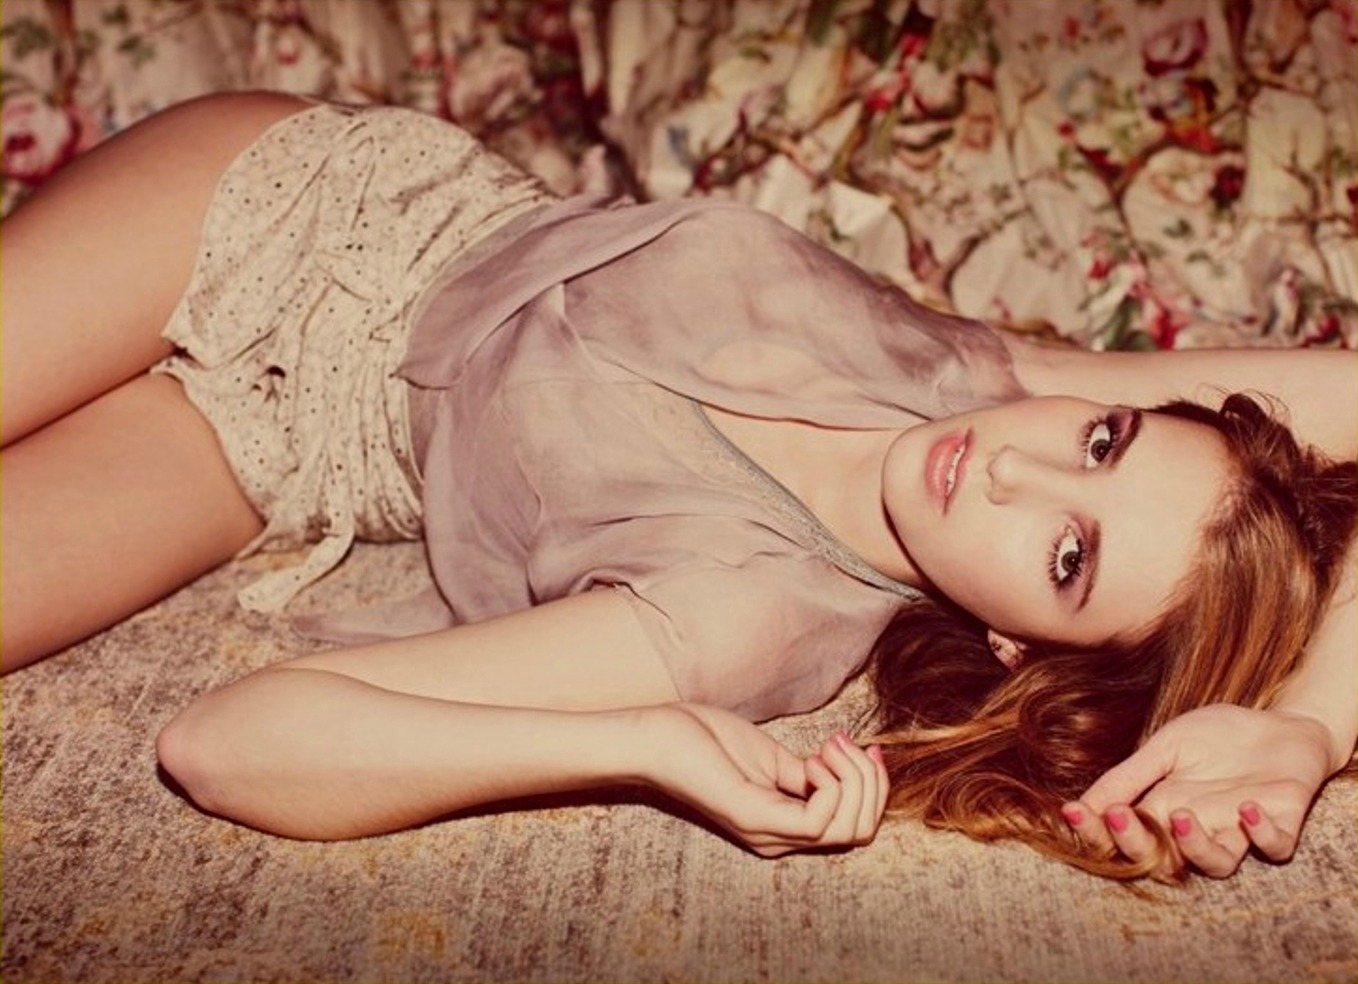 Hot Emma Roberts Sexy Hd Wallpapers - All Hd Wallpapers-4354